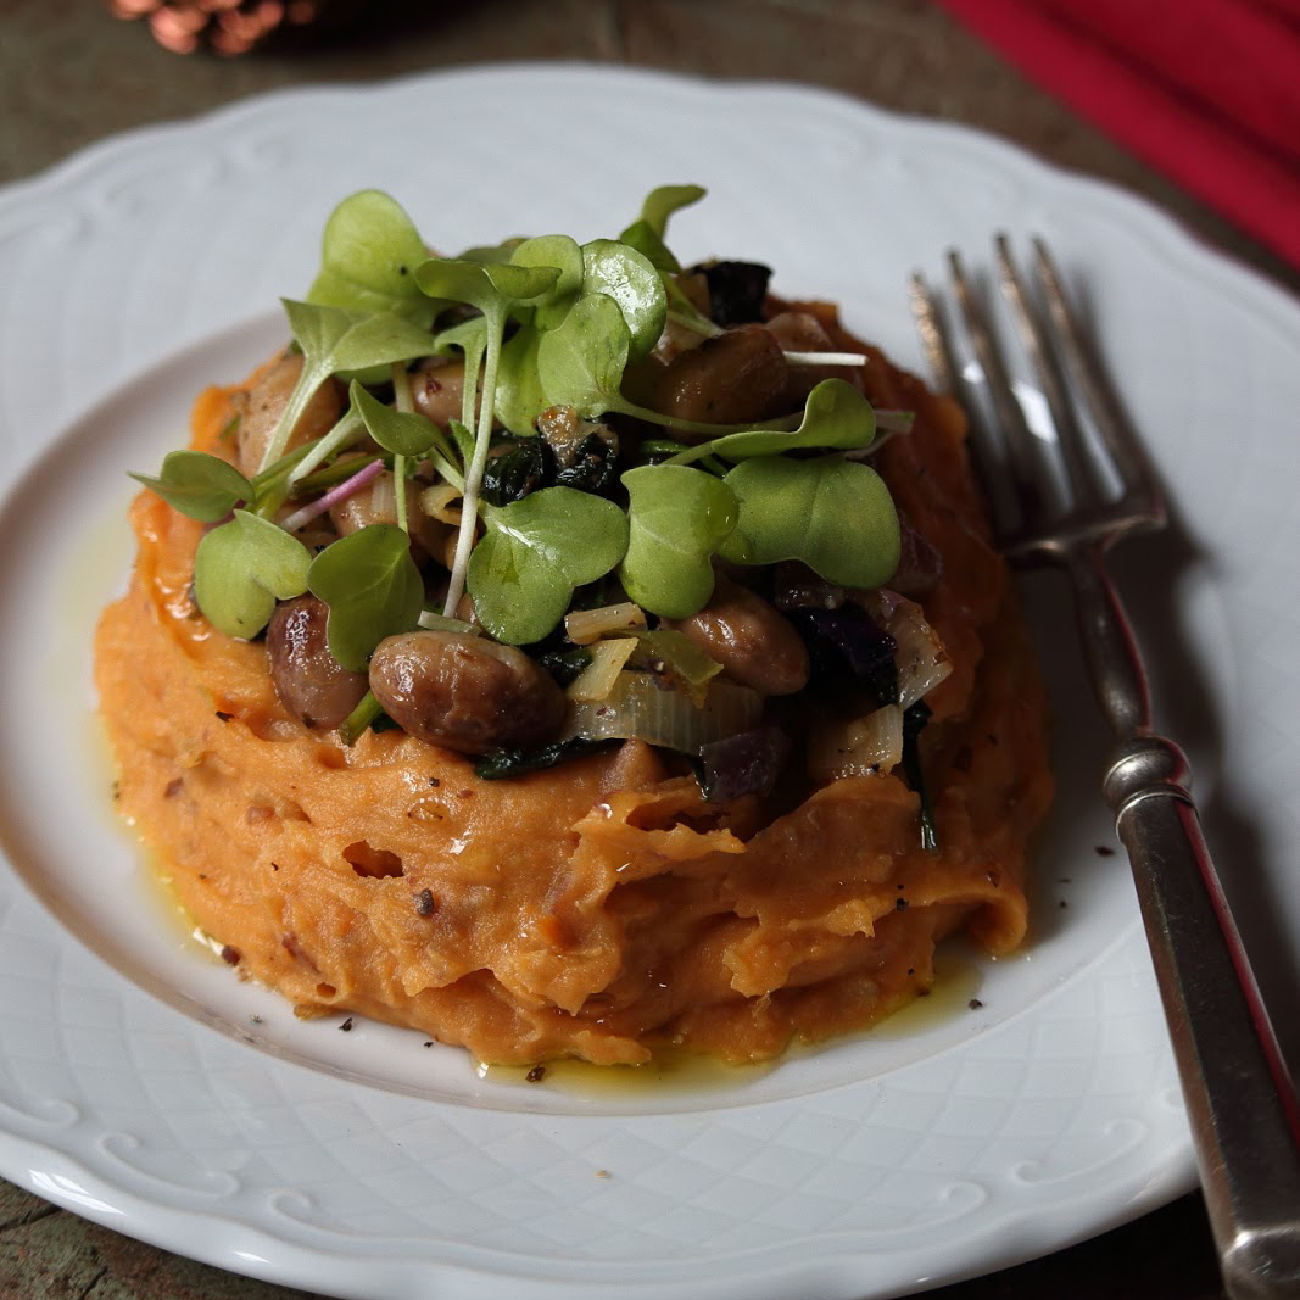 Sweet Potato Puree with Sautéed Beans in Beer